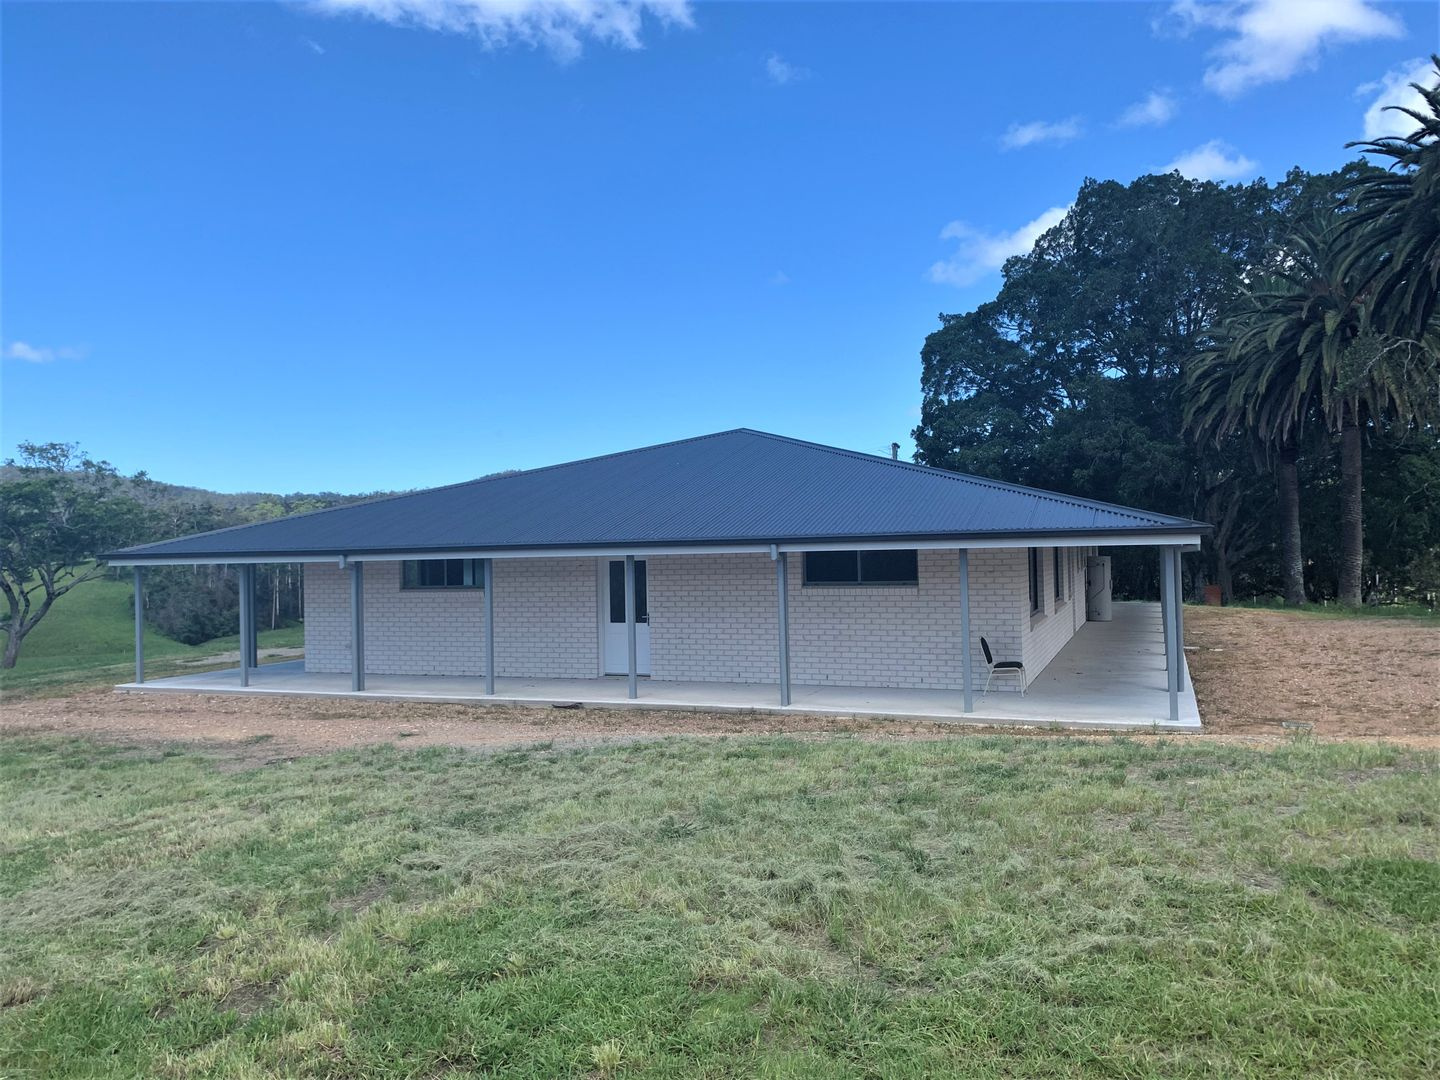 436 Maras Creek Road, Utungun NSW 2447, Image 1